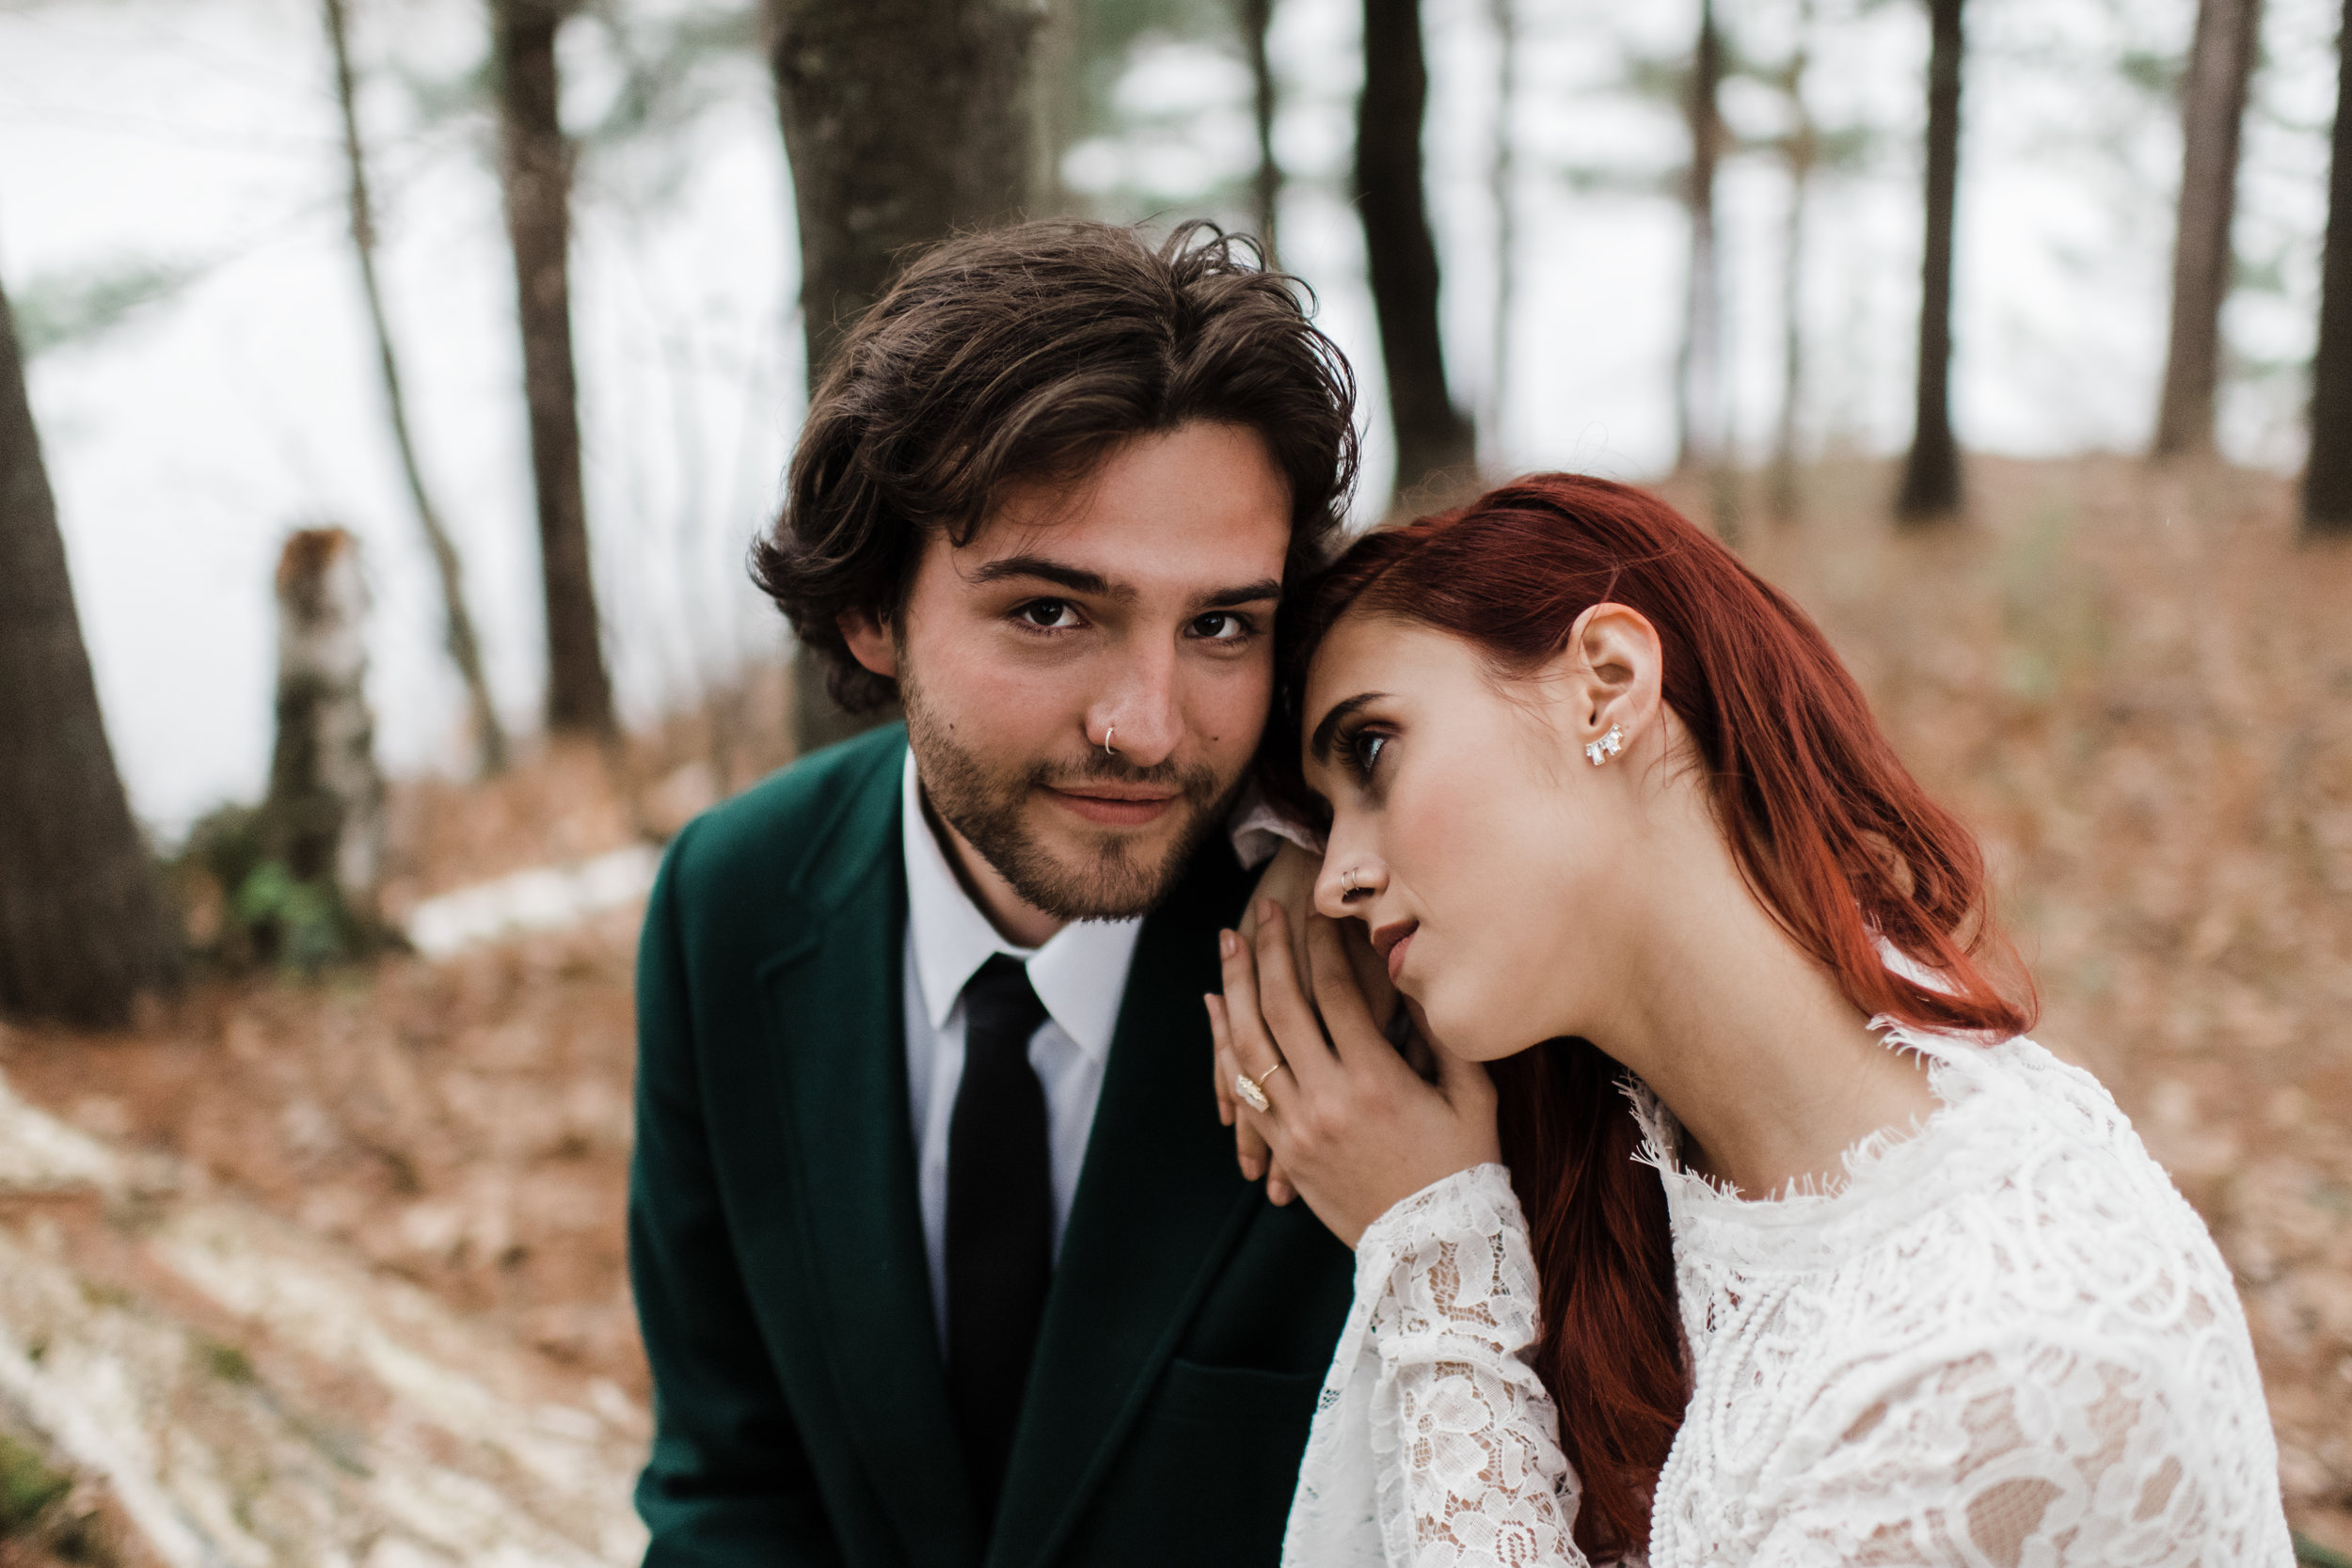 Groom in green jacket smiles as bride in lace and beaded crop top rests her head on his shoulder.